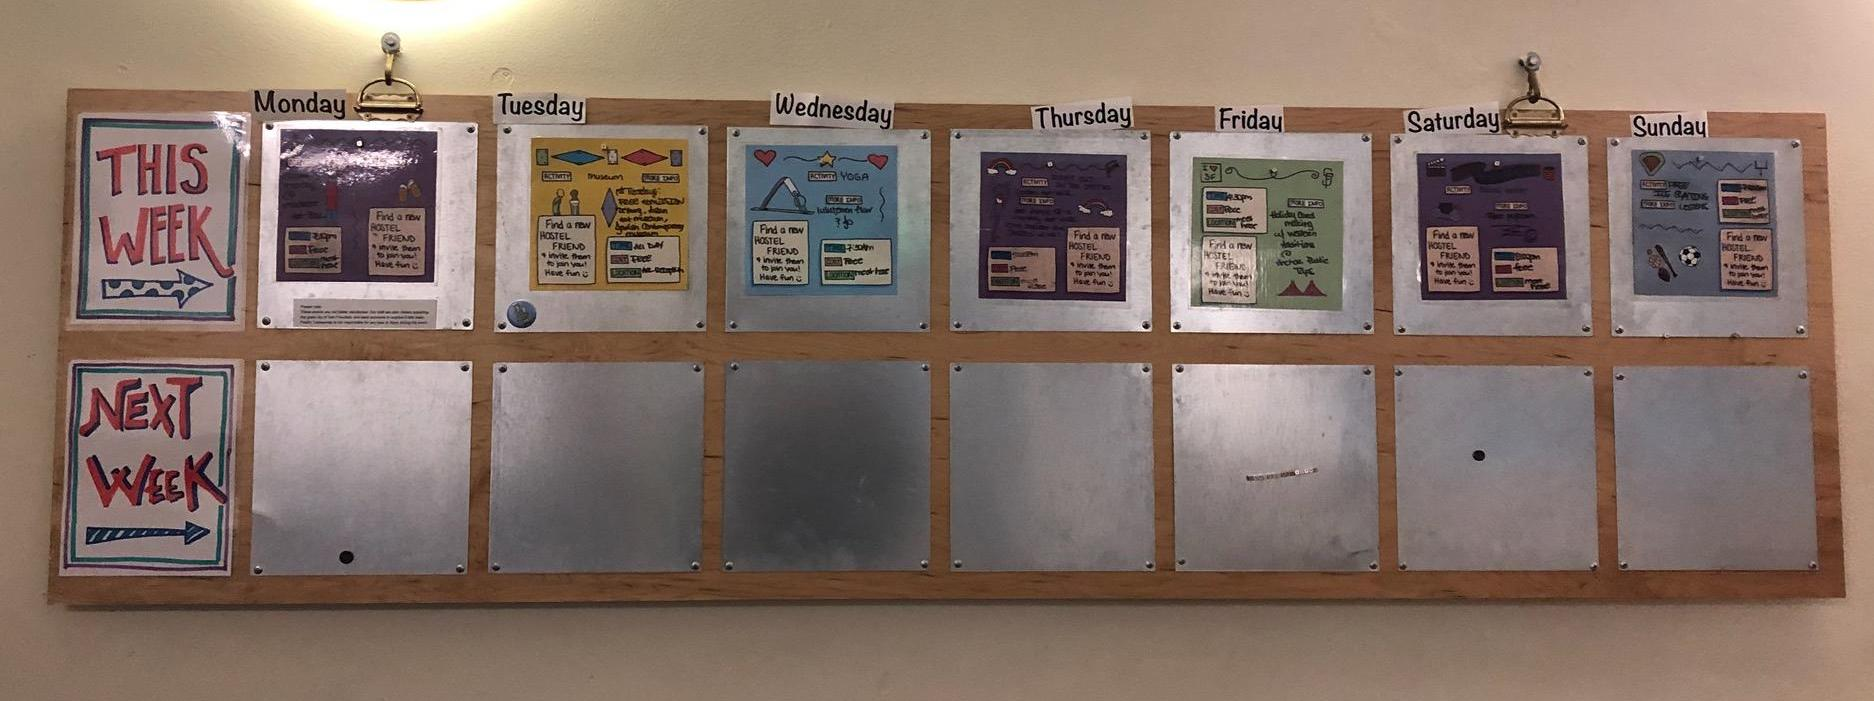 Hostel events board hanging on a wall